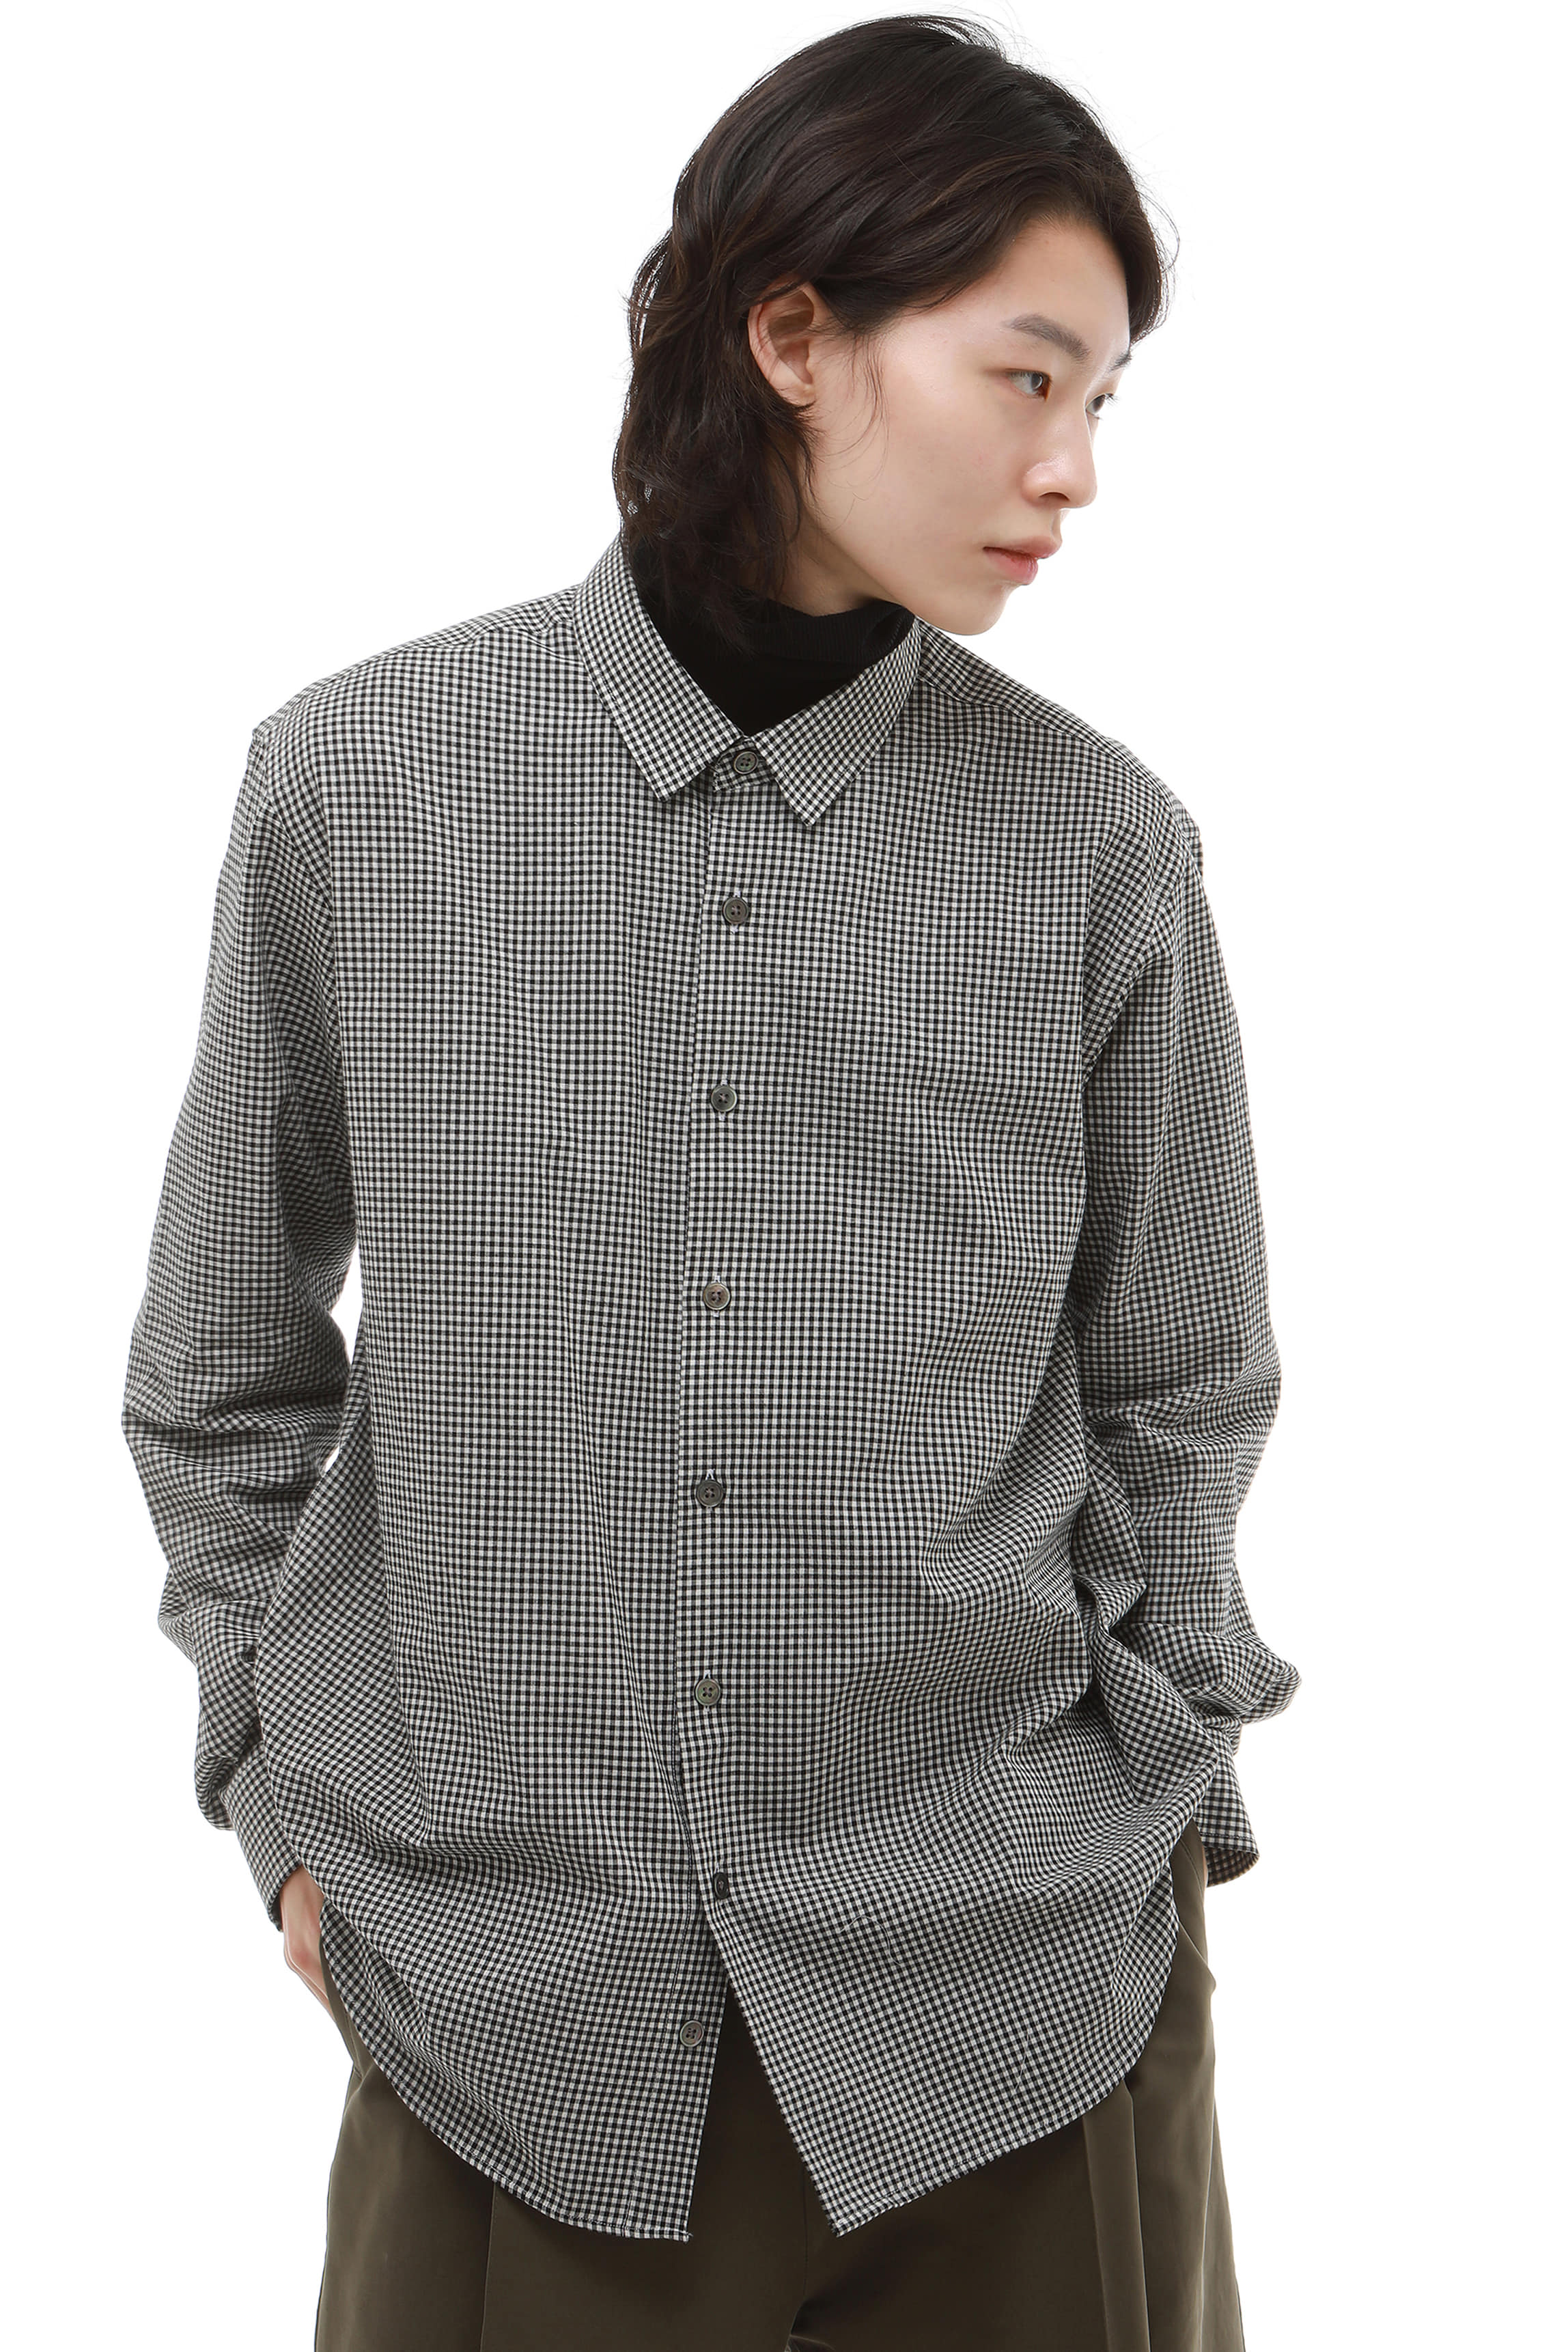 S007 / Black Check Short Collar Shirts